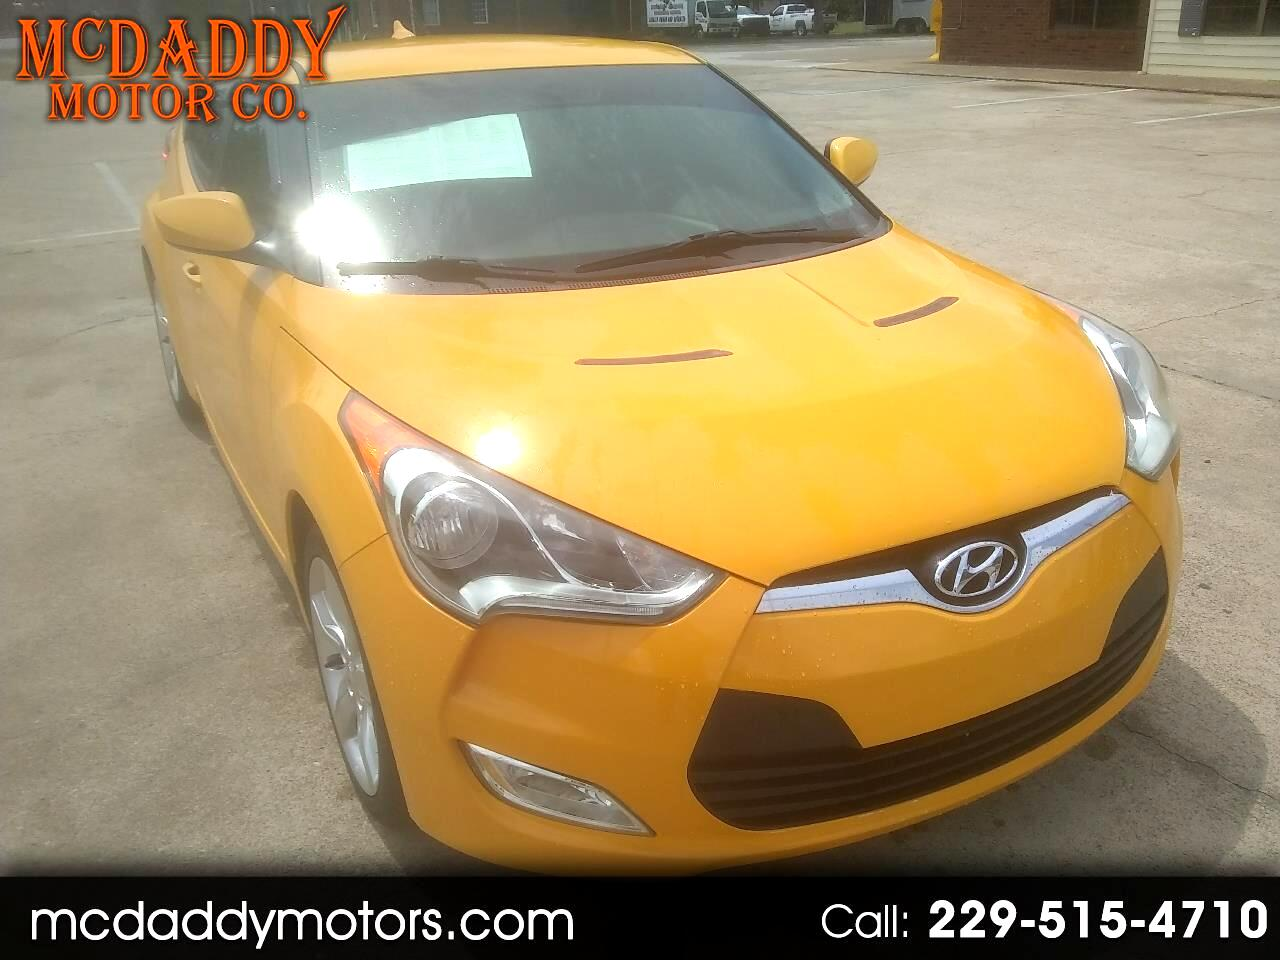 2013 Hyundai Veloster 3dr Cpe Man w/Black Int